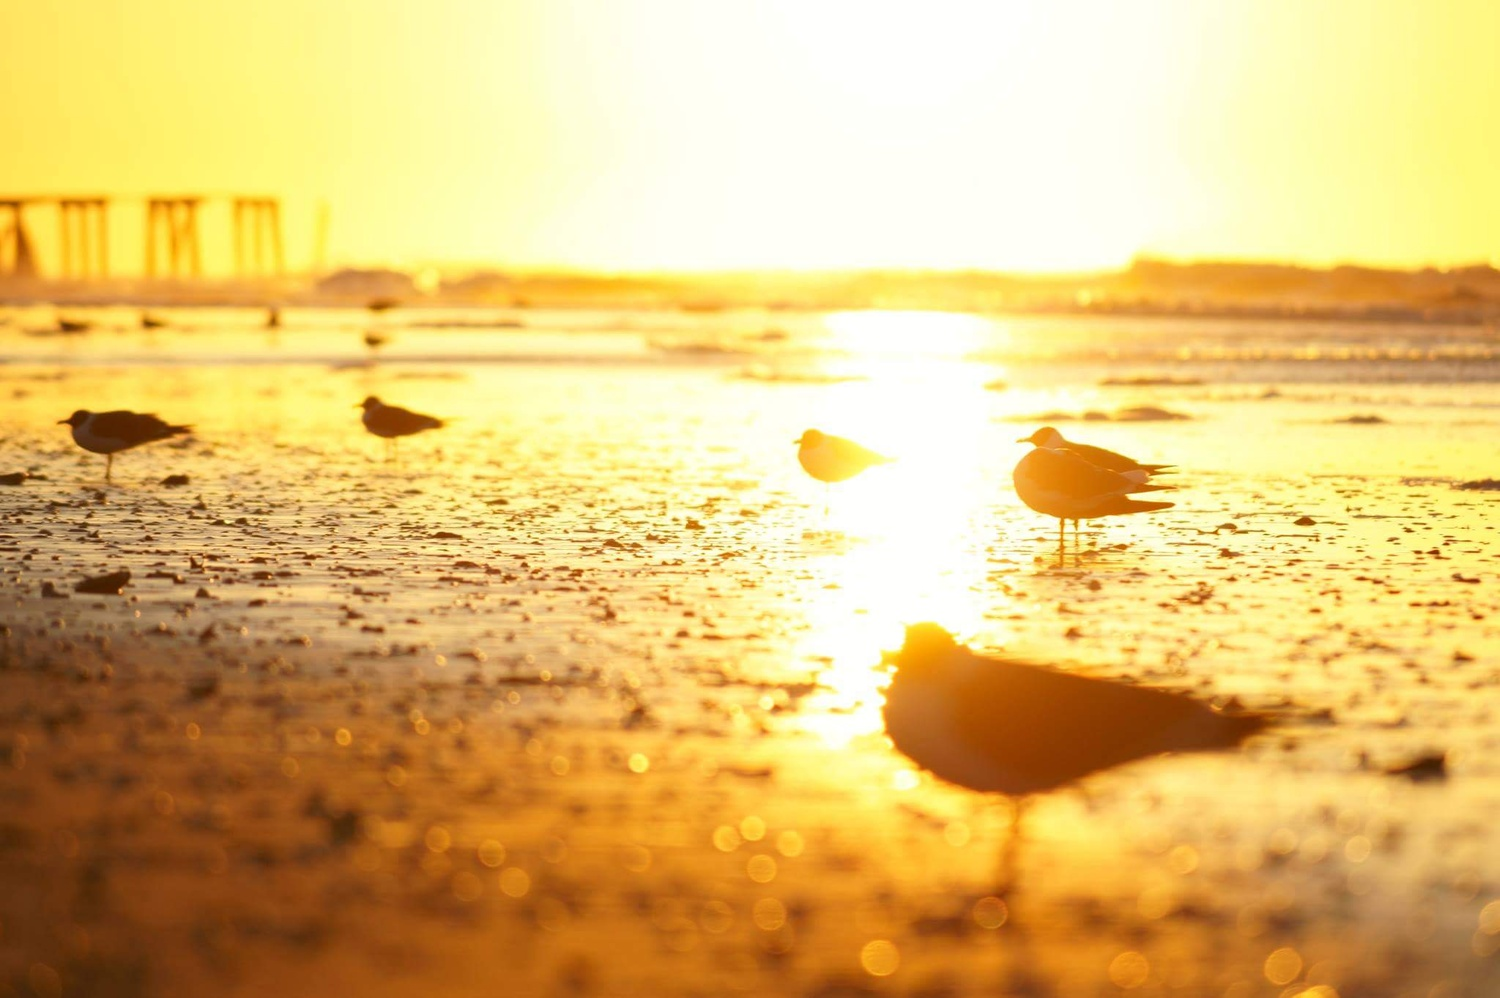 Sunrise at the beach by Andy Borysowski